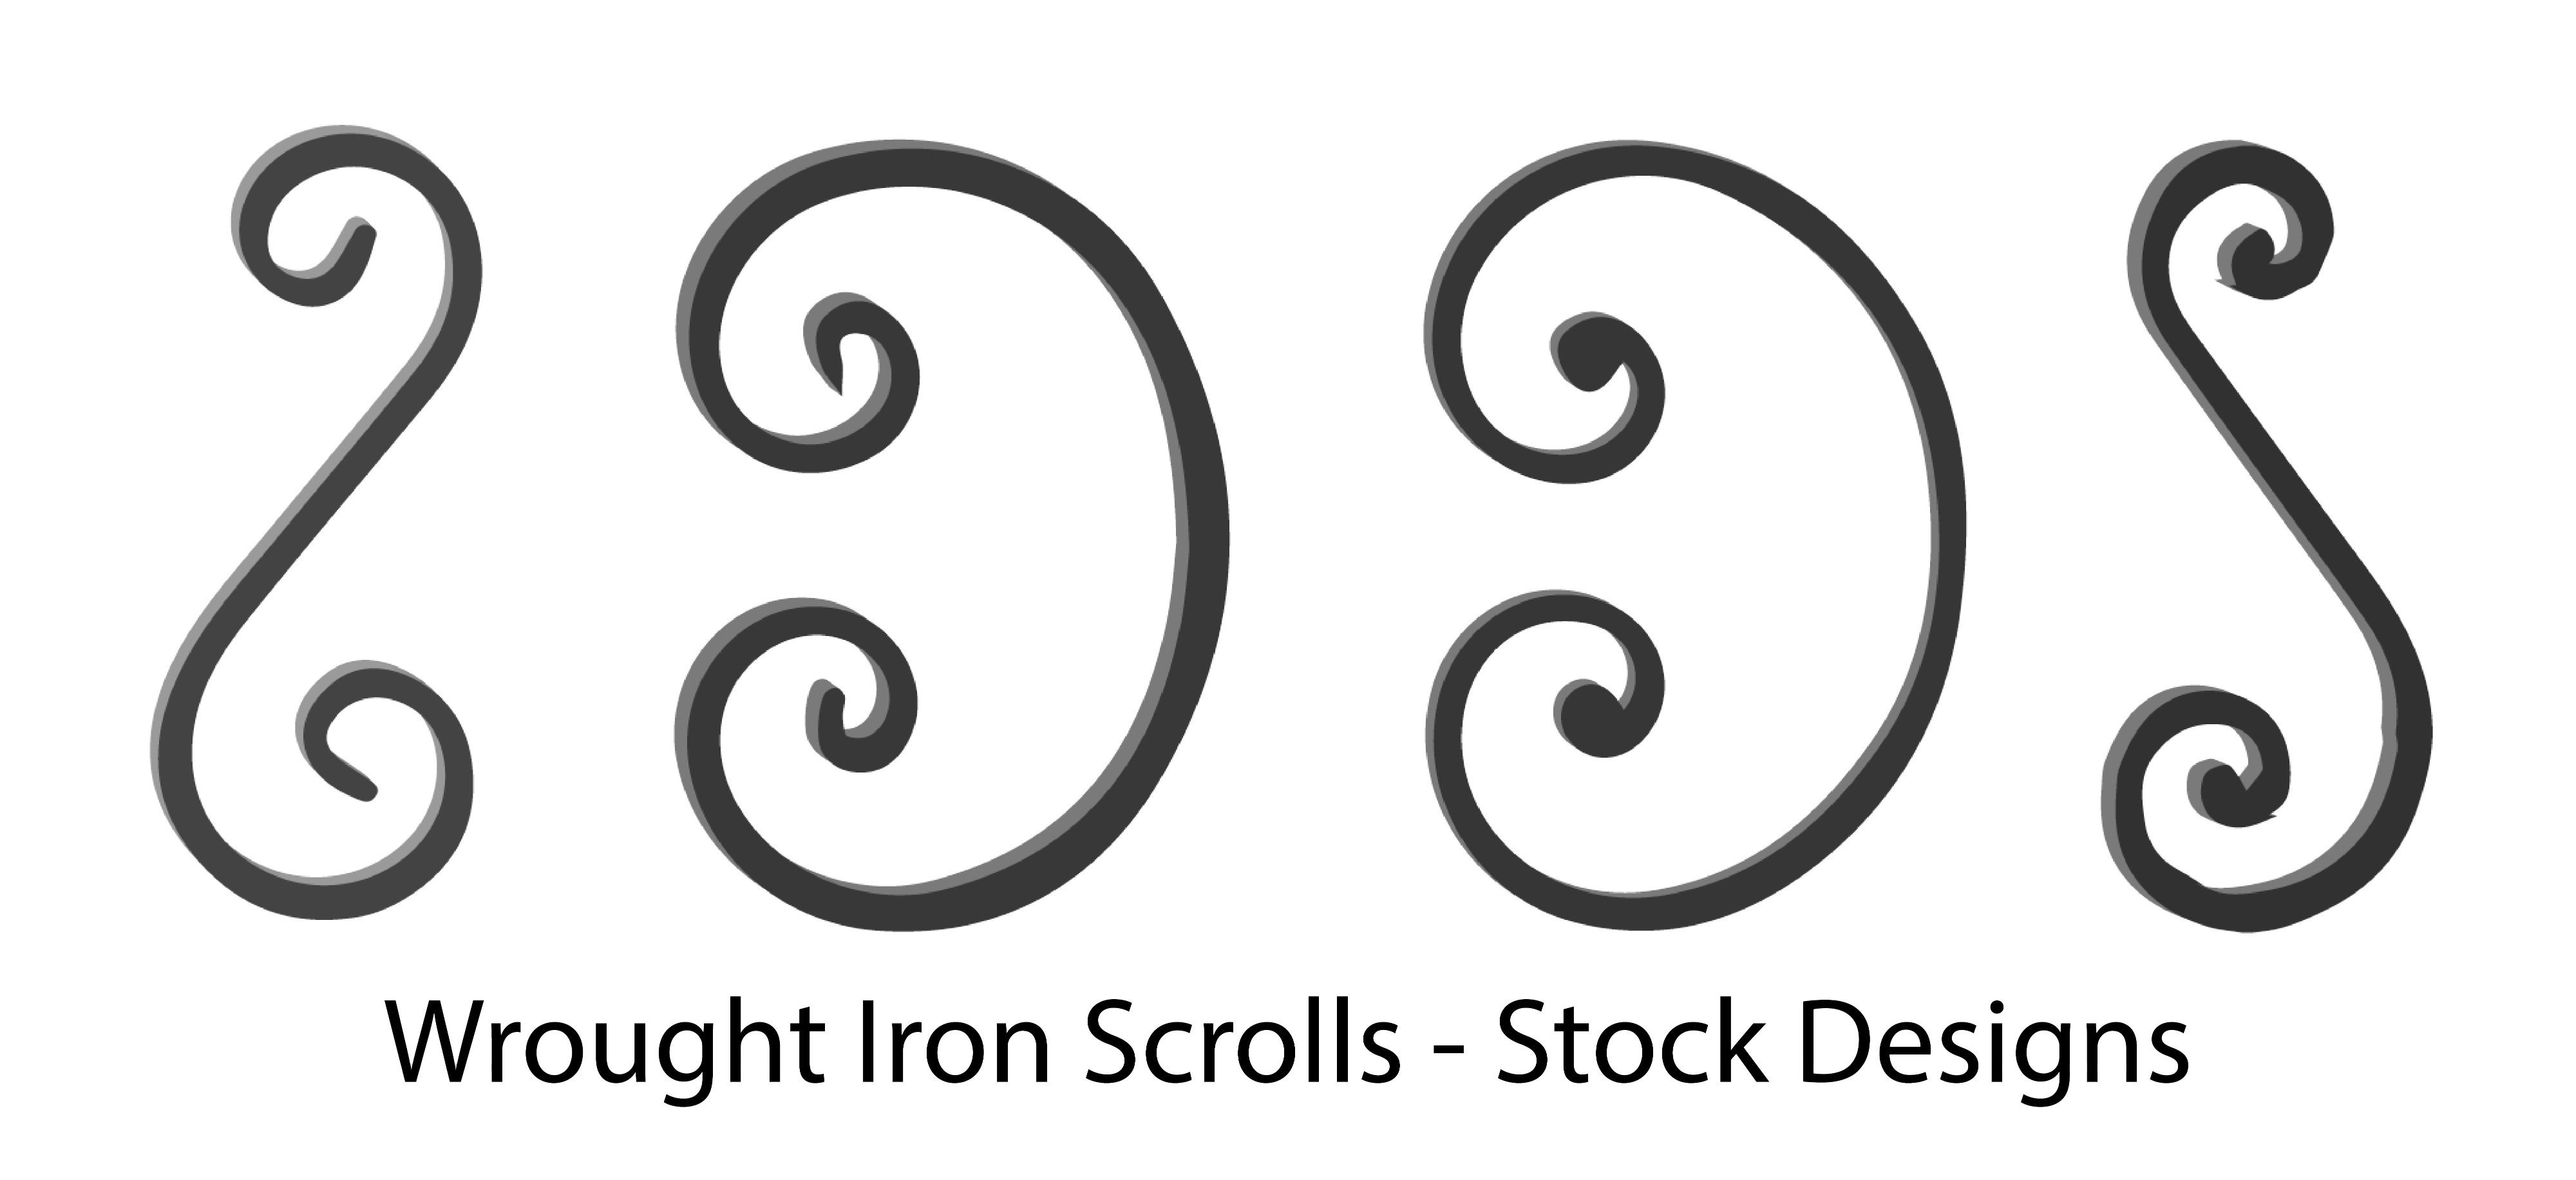 Wrought Iron Scrolls, Forged Steel Scrolls. Wide variety and Excellent Quality from Superior Ornamental Supply.